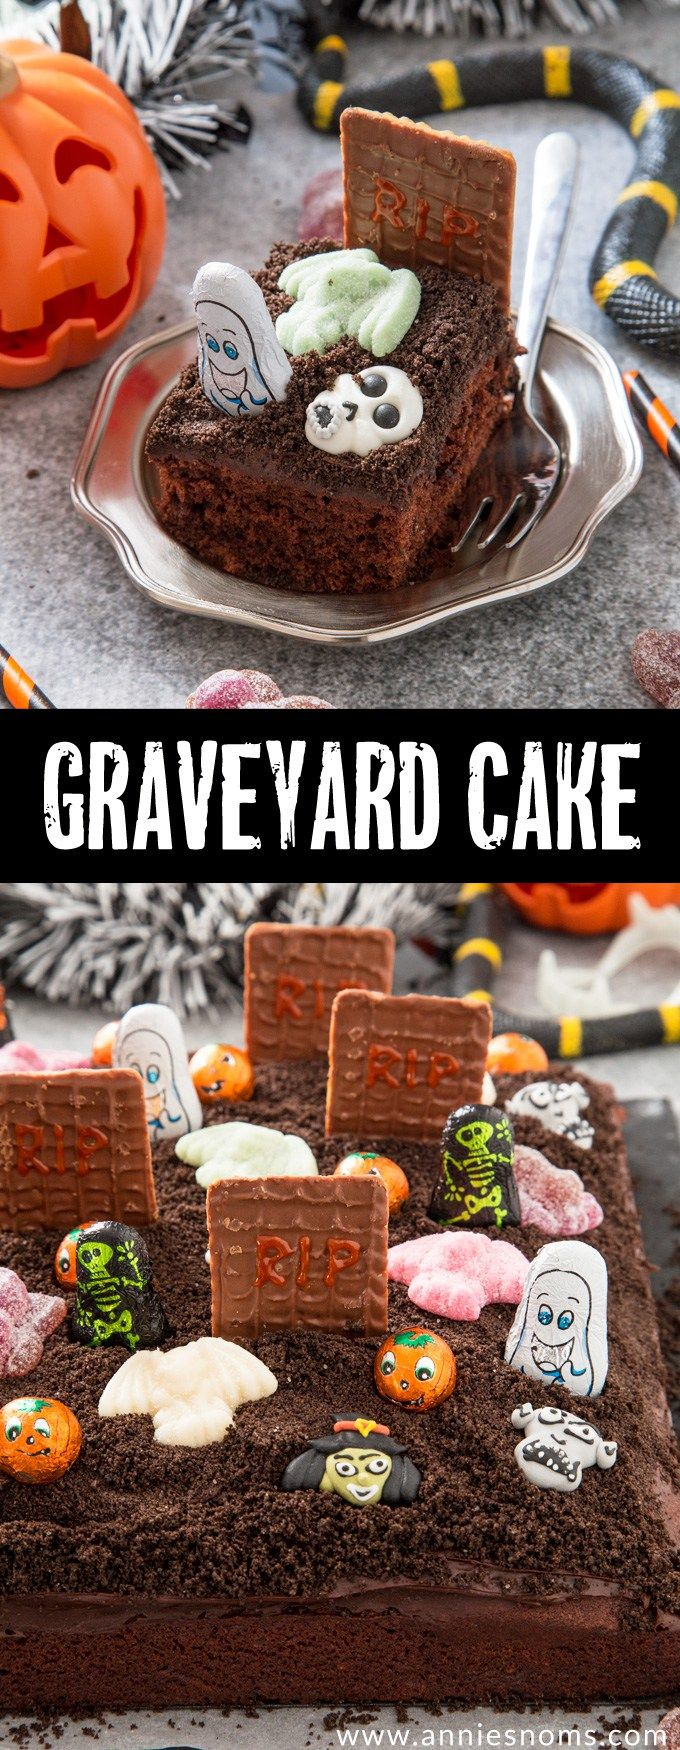 chocolate graveyard cake